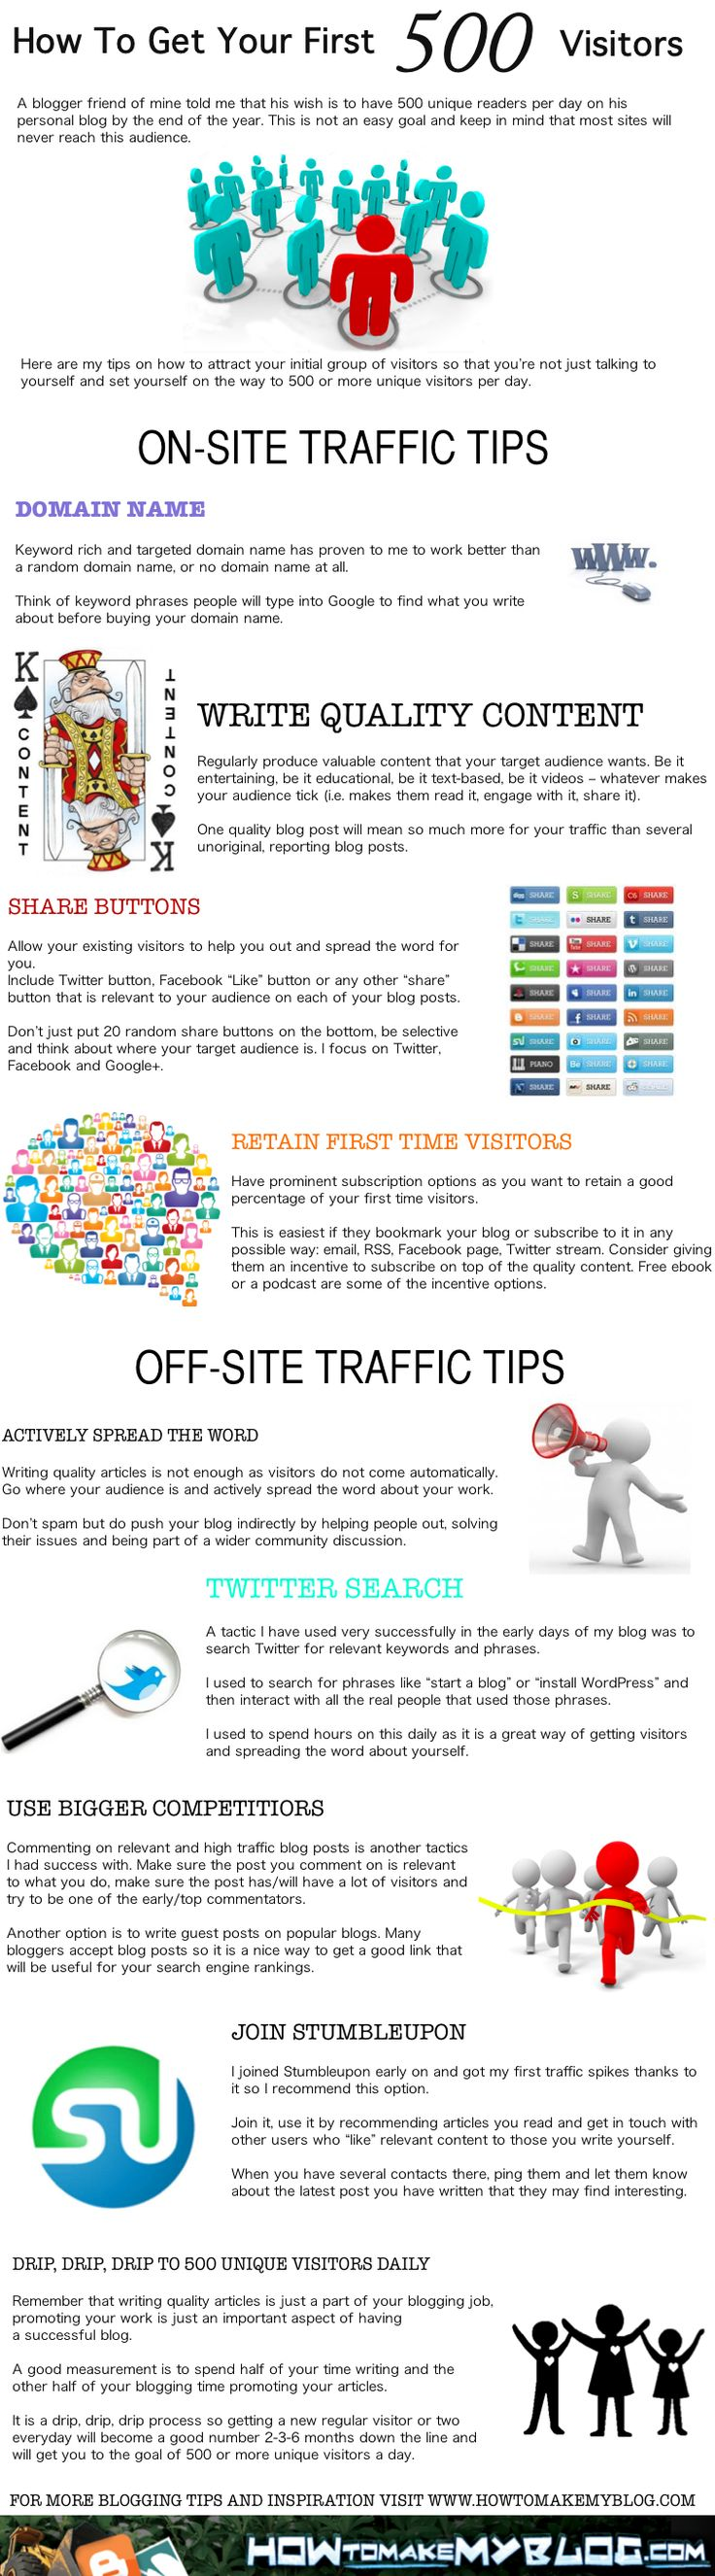 How To Get Your First 500 Visitors